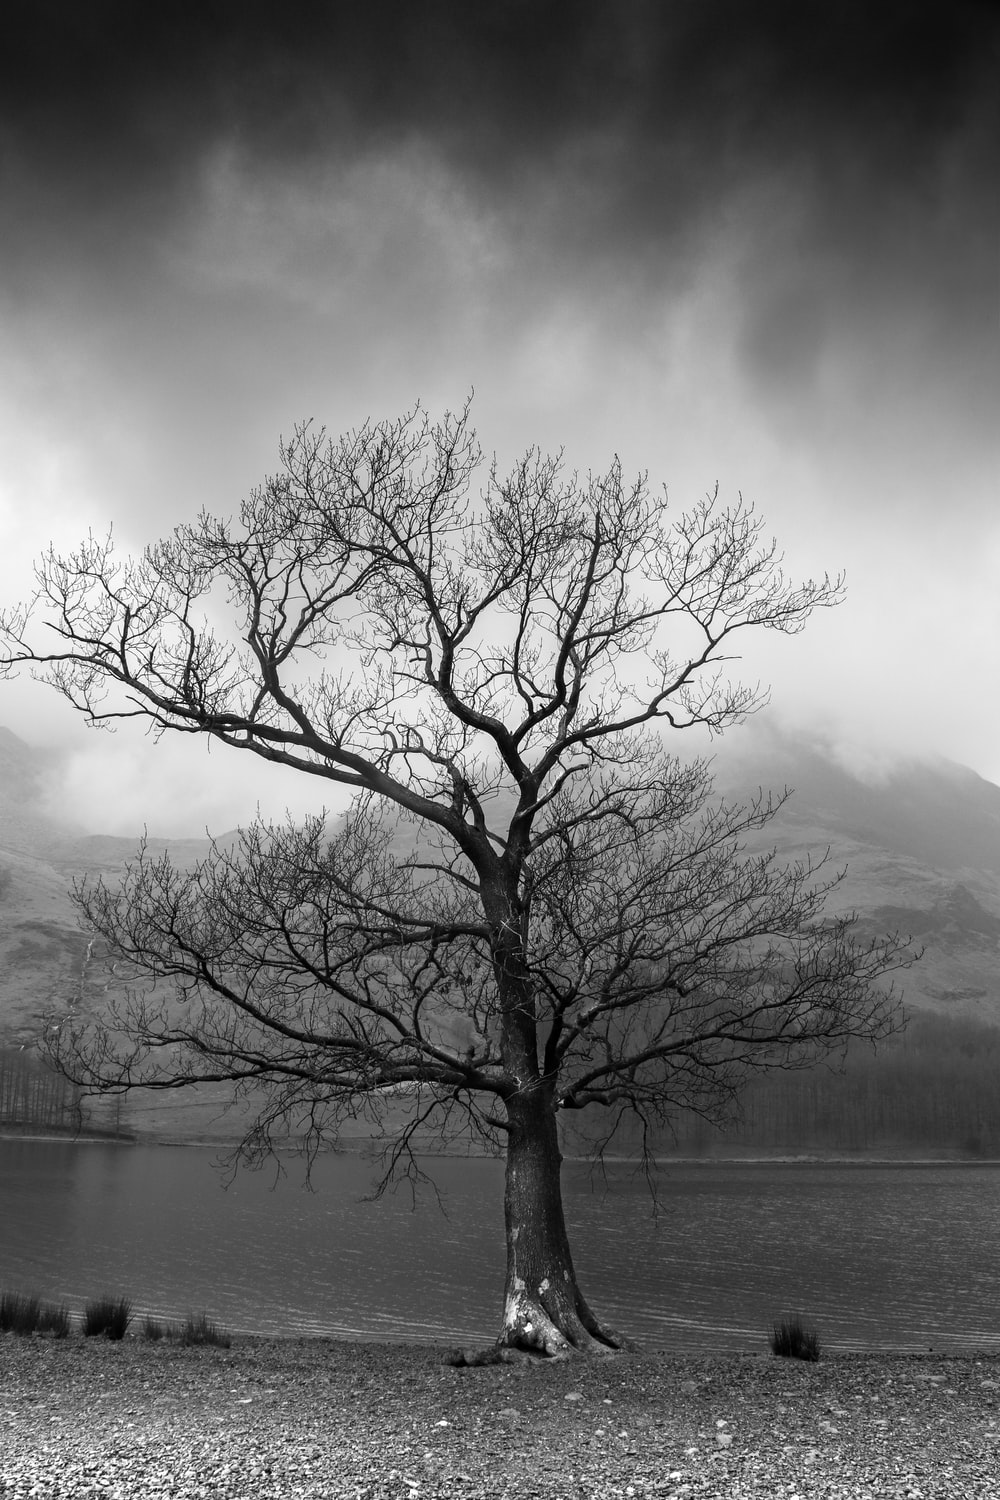 a gloomy scorched tree in darkness